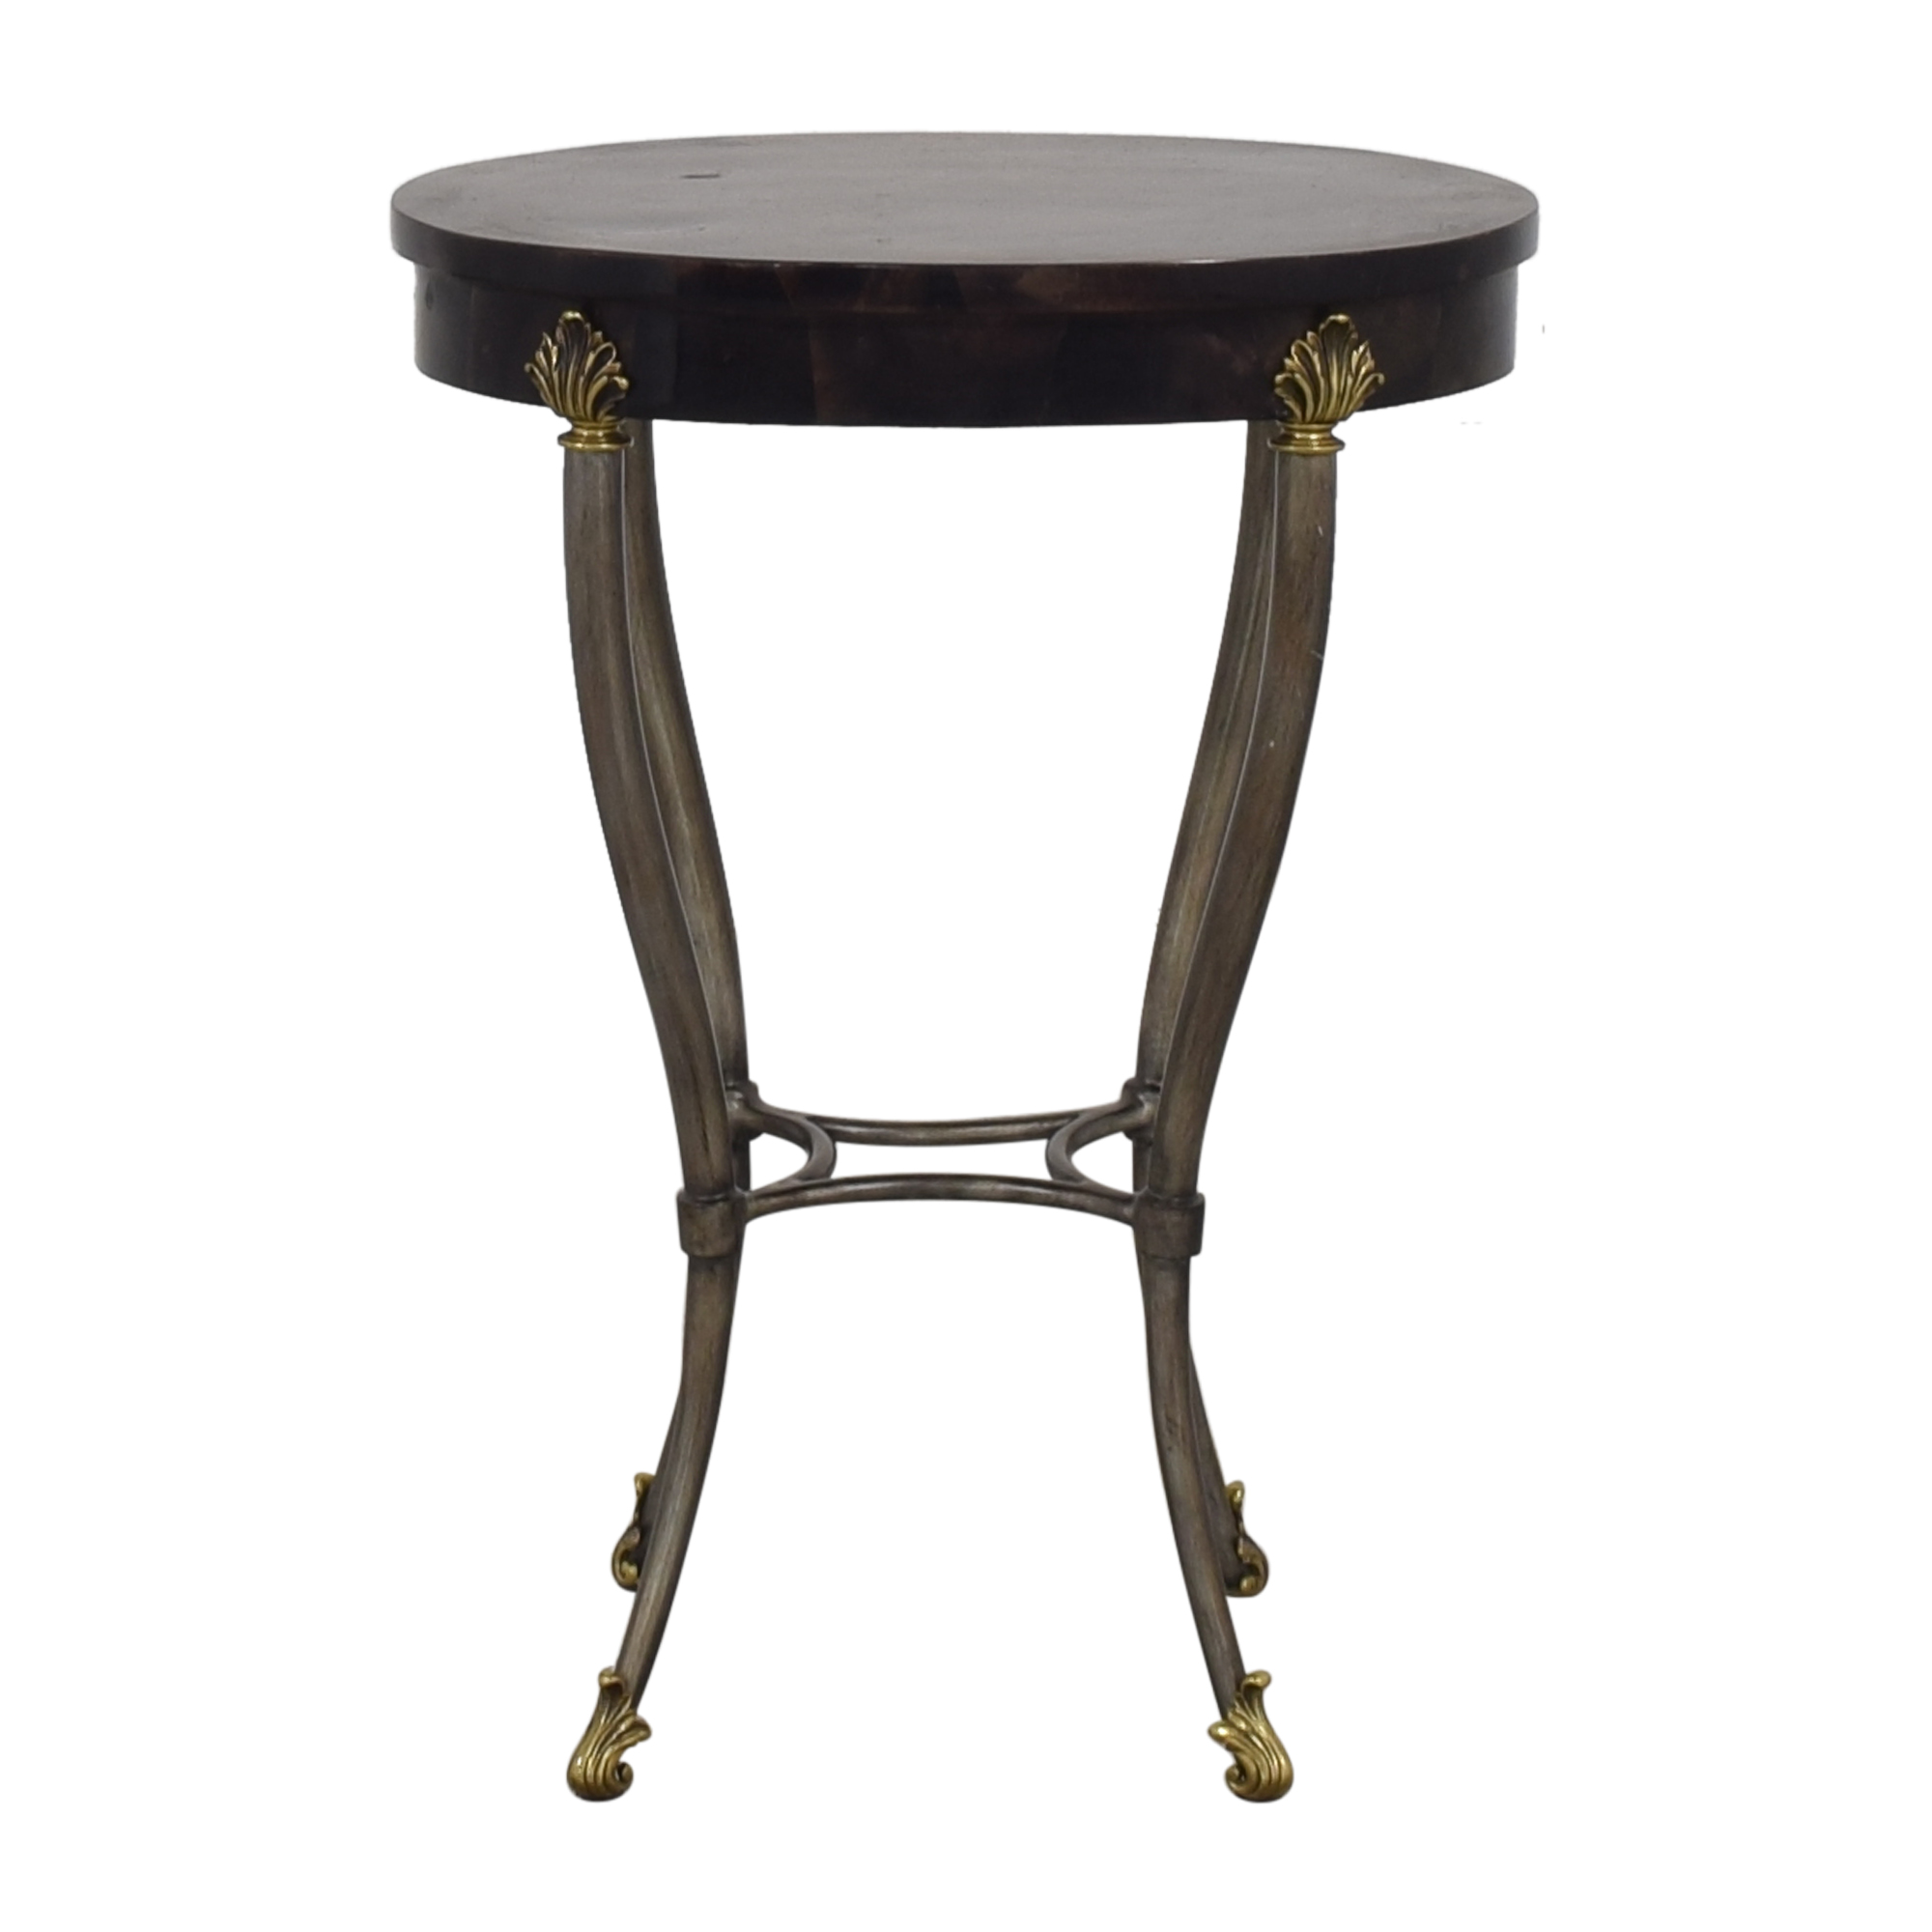 buy Ethan Allen Regency Style Faux Tessellated Horn Oval Side Table Ethan Allen Accent Tables